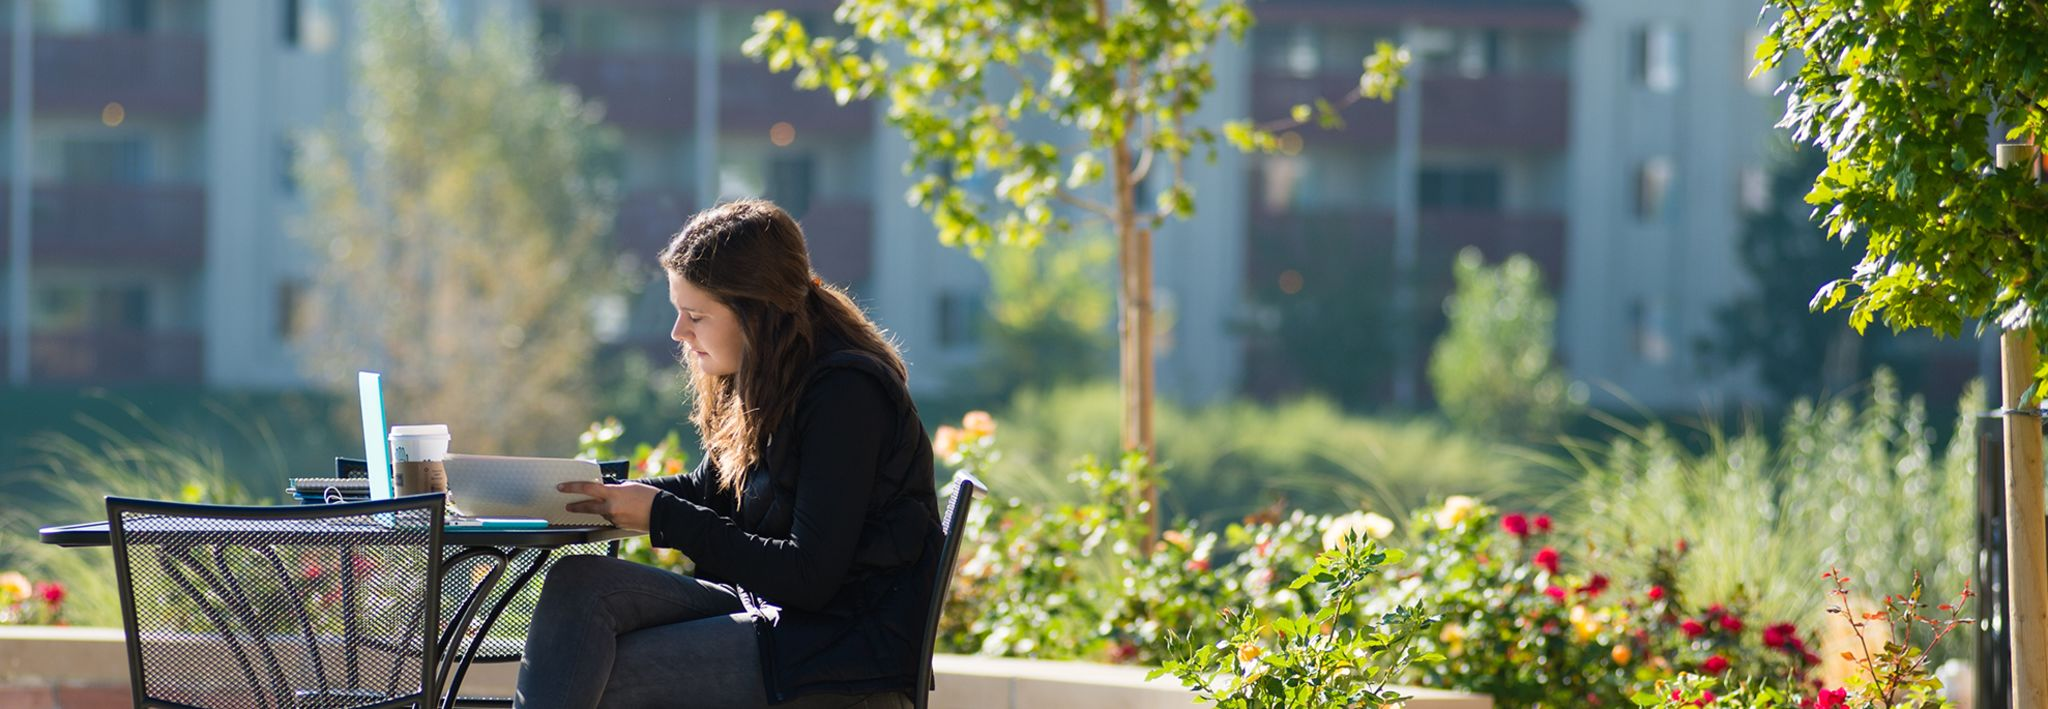 Student studying outside of Leprino on a nice sunny day.